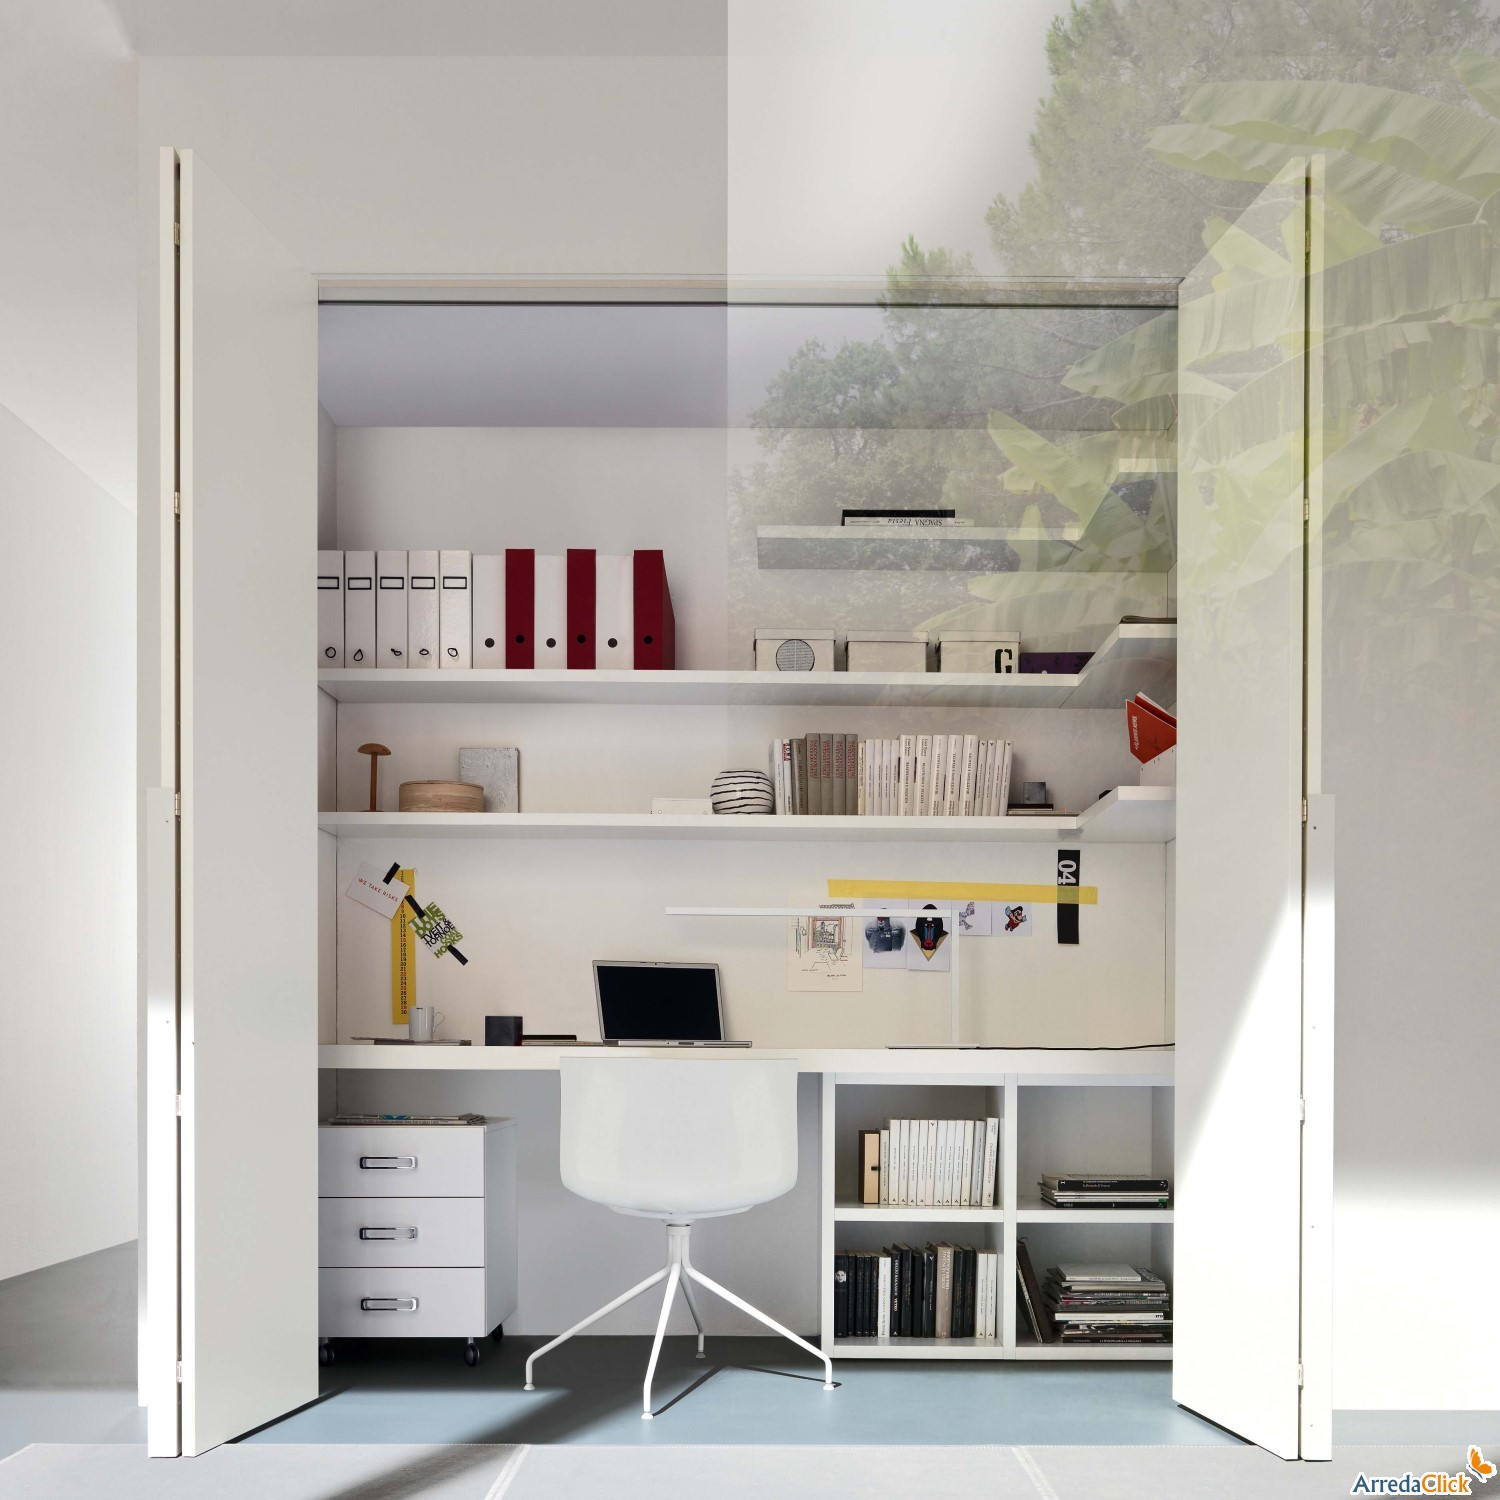 Sliding door specialists for Idee per arredare una parete